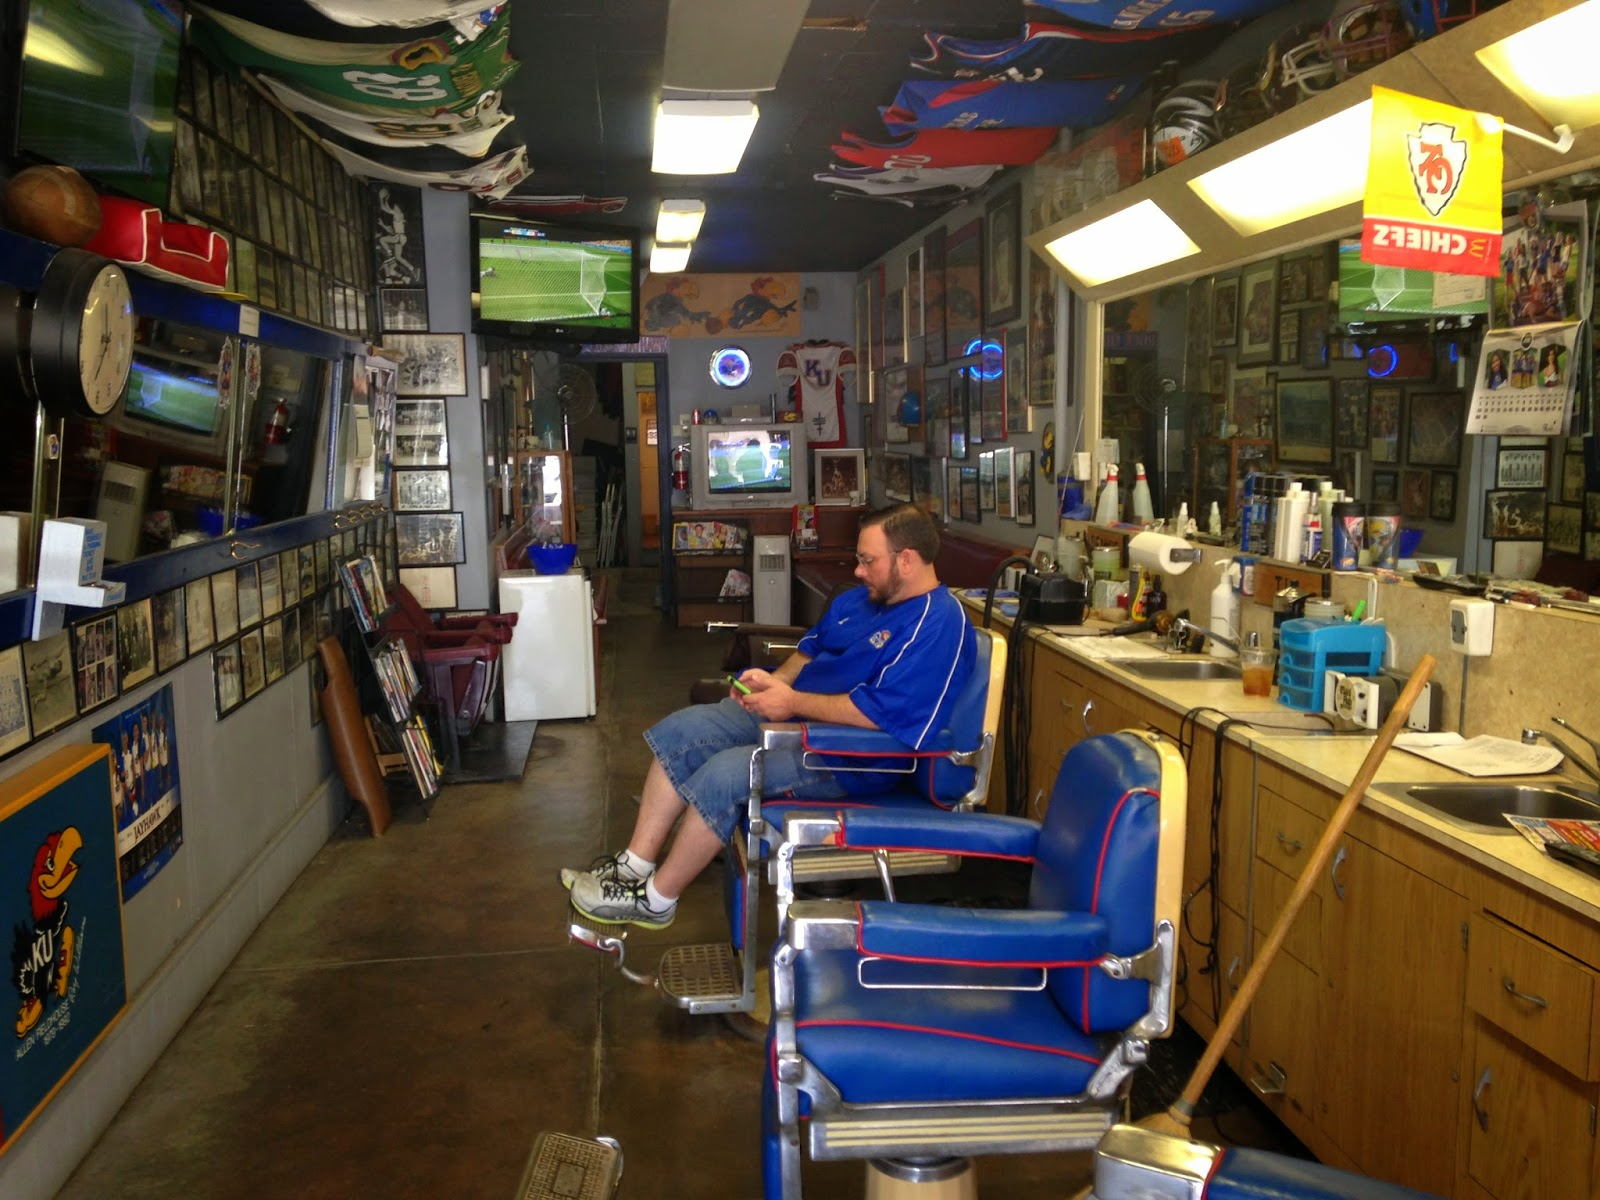 Barber Shop Lawrence Ks : CombatCriticGives Rexs Stadium Barbershop 9 Out Of 10 Bombs ... BOMBS ...